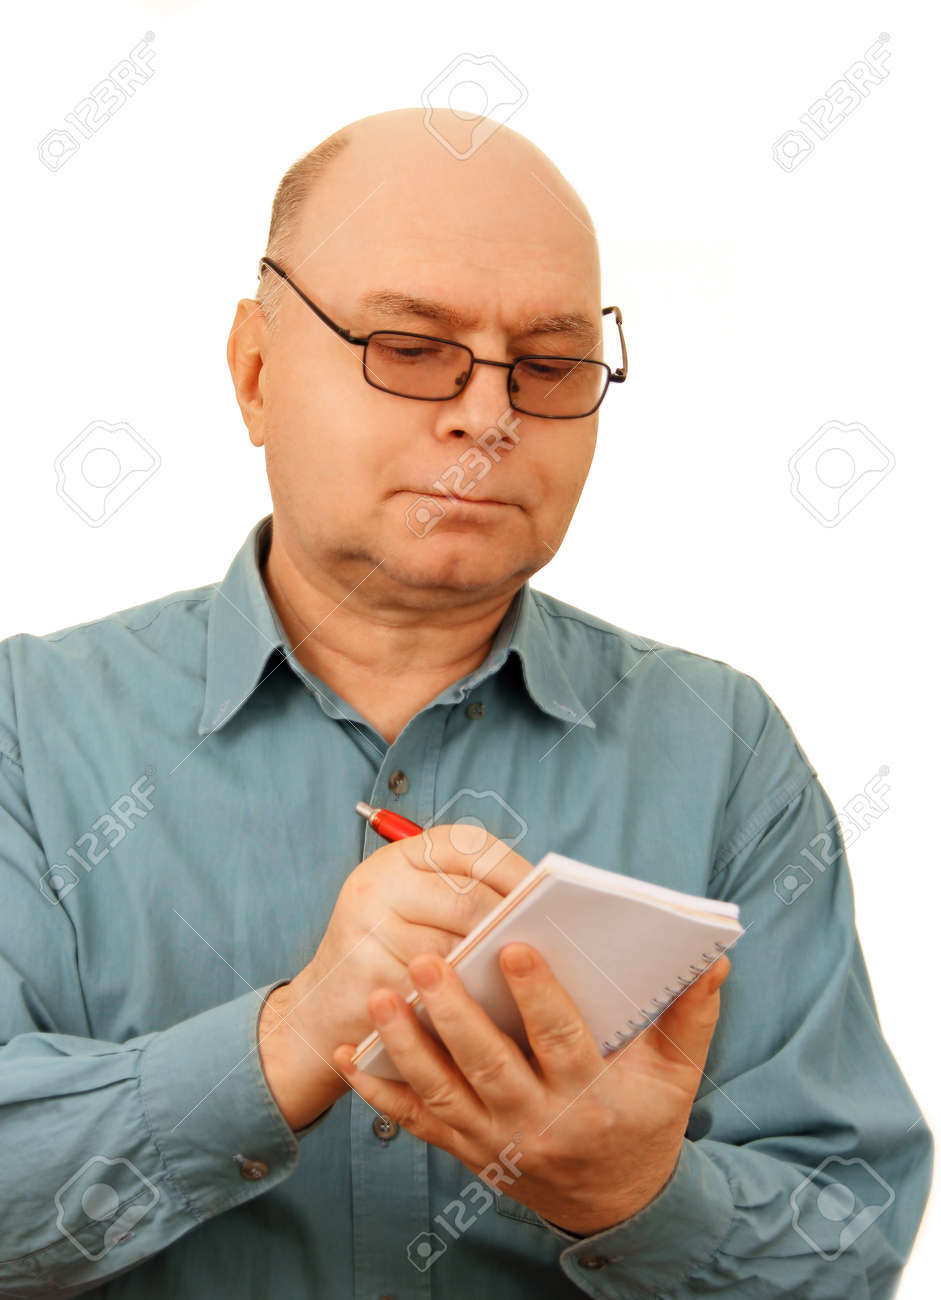 a middle-aged man in a blue shirt with a notebook and pen in hand, isolated on white background Stock Photo - 18410861